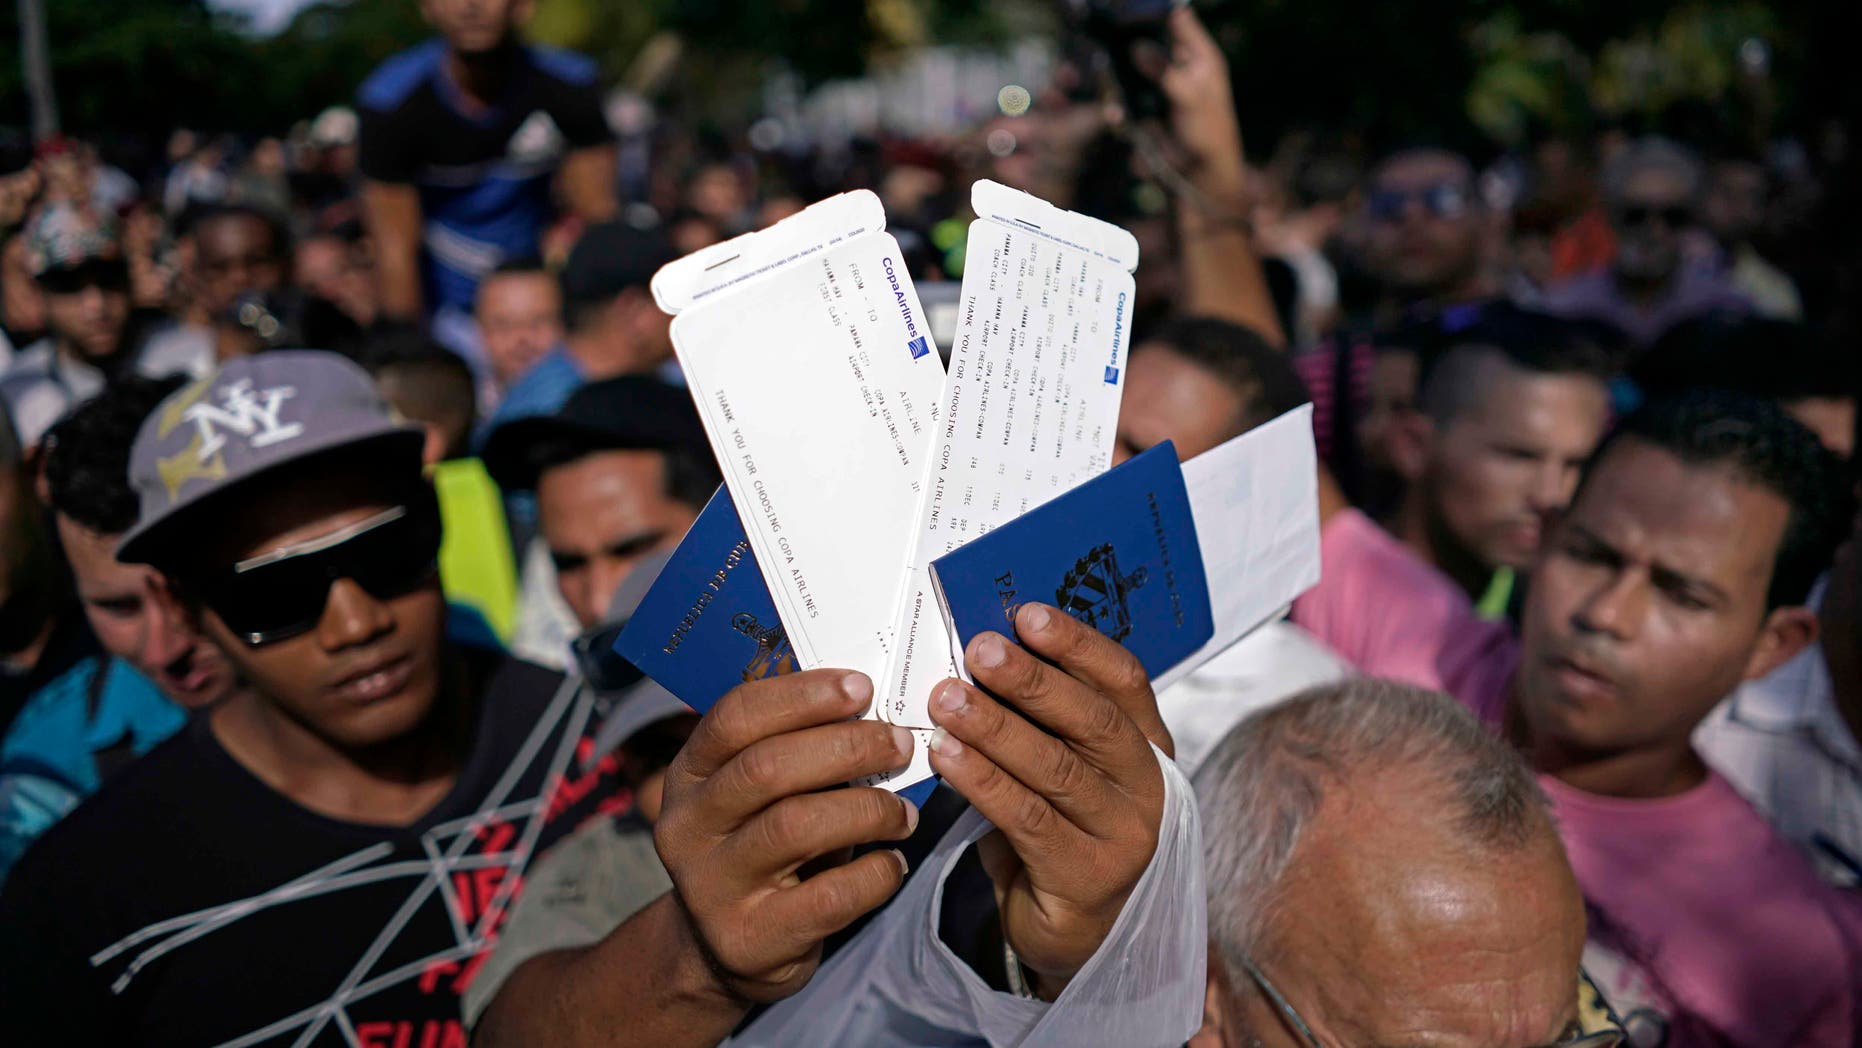 A man holds up airline tickets with destination to Ecuador, outside the Ecuadorian embassy, in Havana, Nov. 27, 2015.